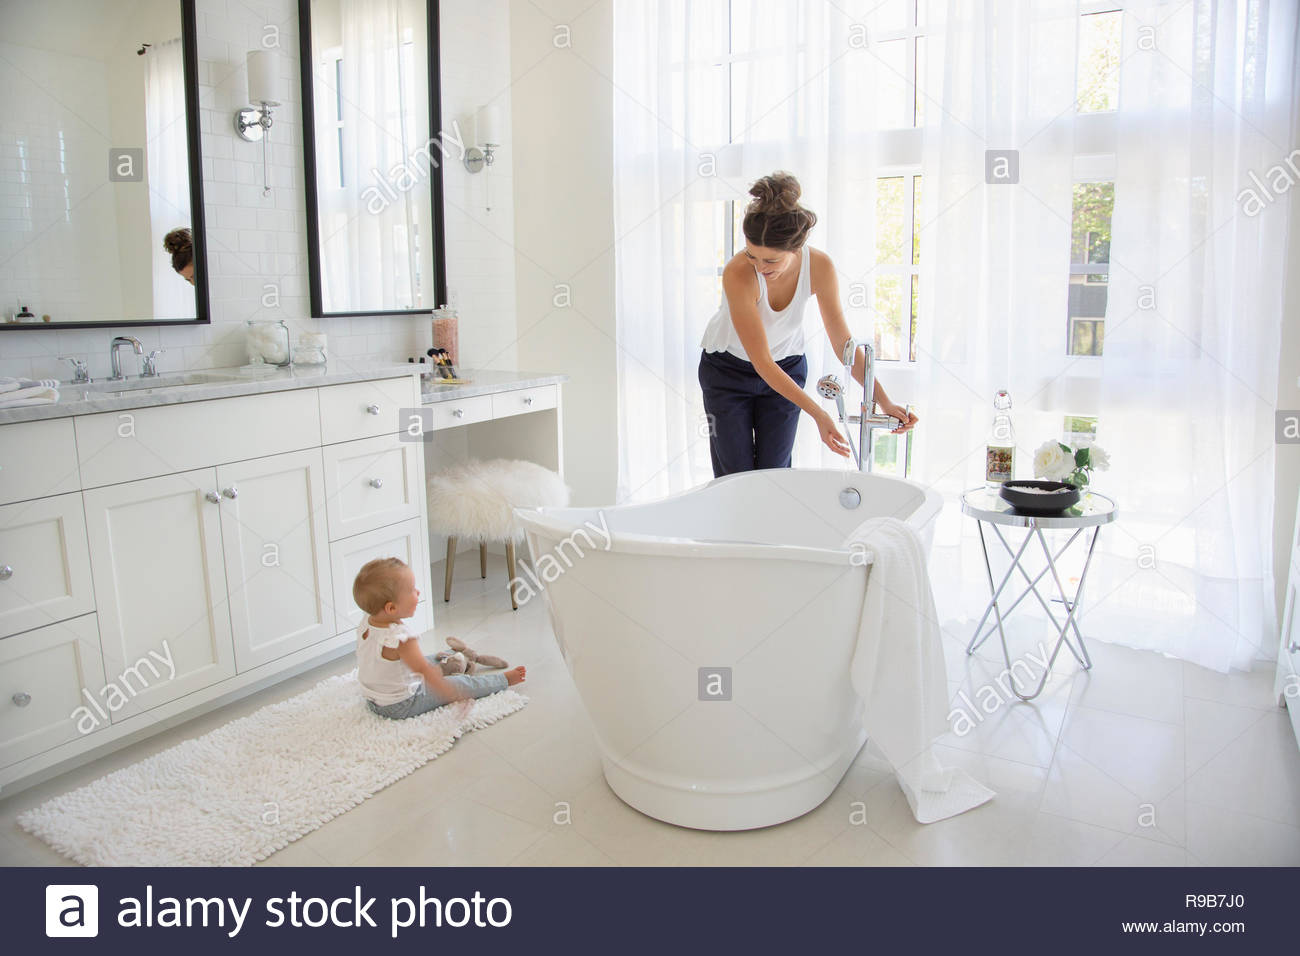 Mother and baby daughter preparing bath - Stock Image